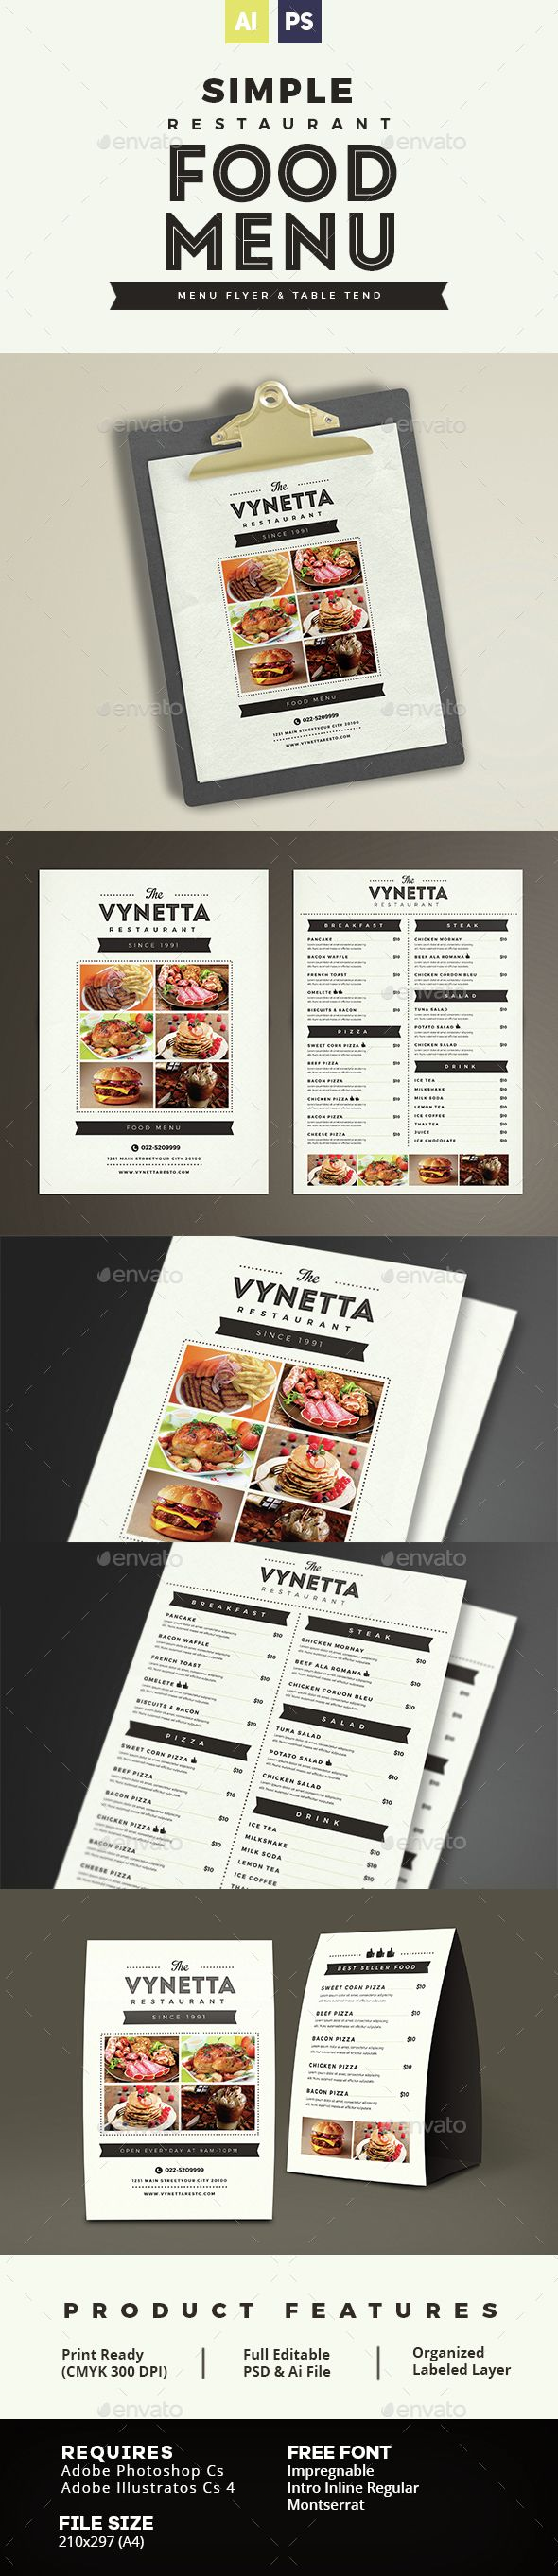 Simple Restaurant Food Menu Template PSD, Vector AI. Download here: http://graphicriver.net/item/simple-restaurant-food-menu/14977784?ref=ksioks